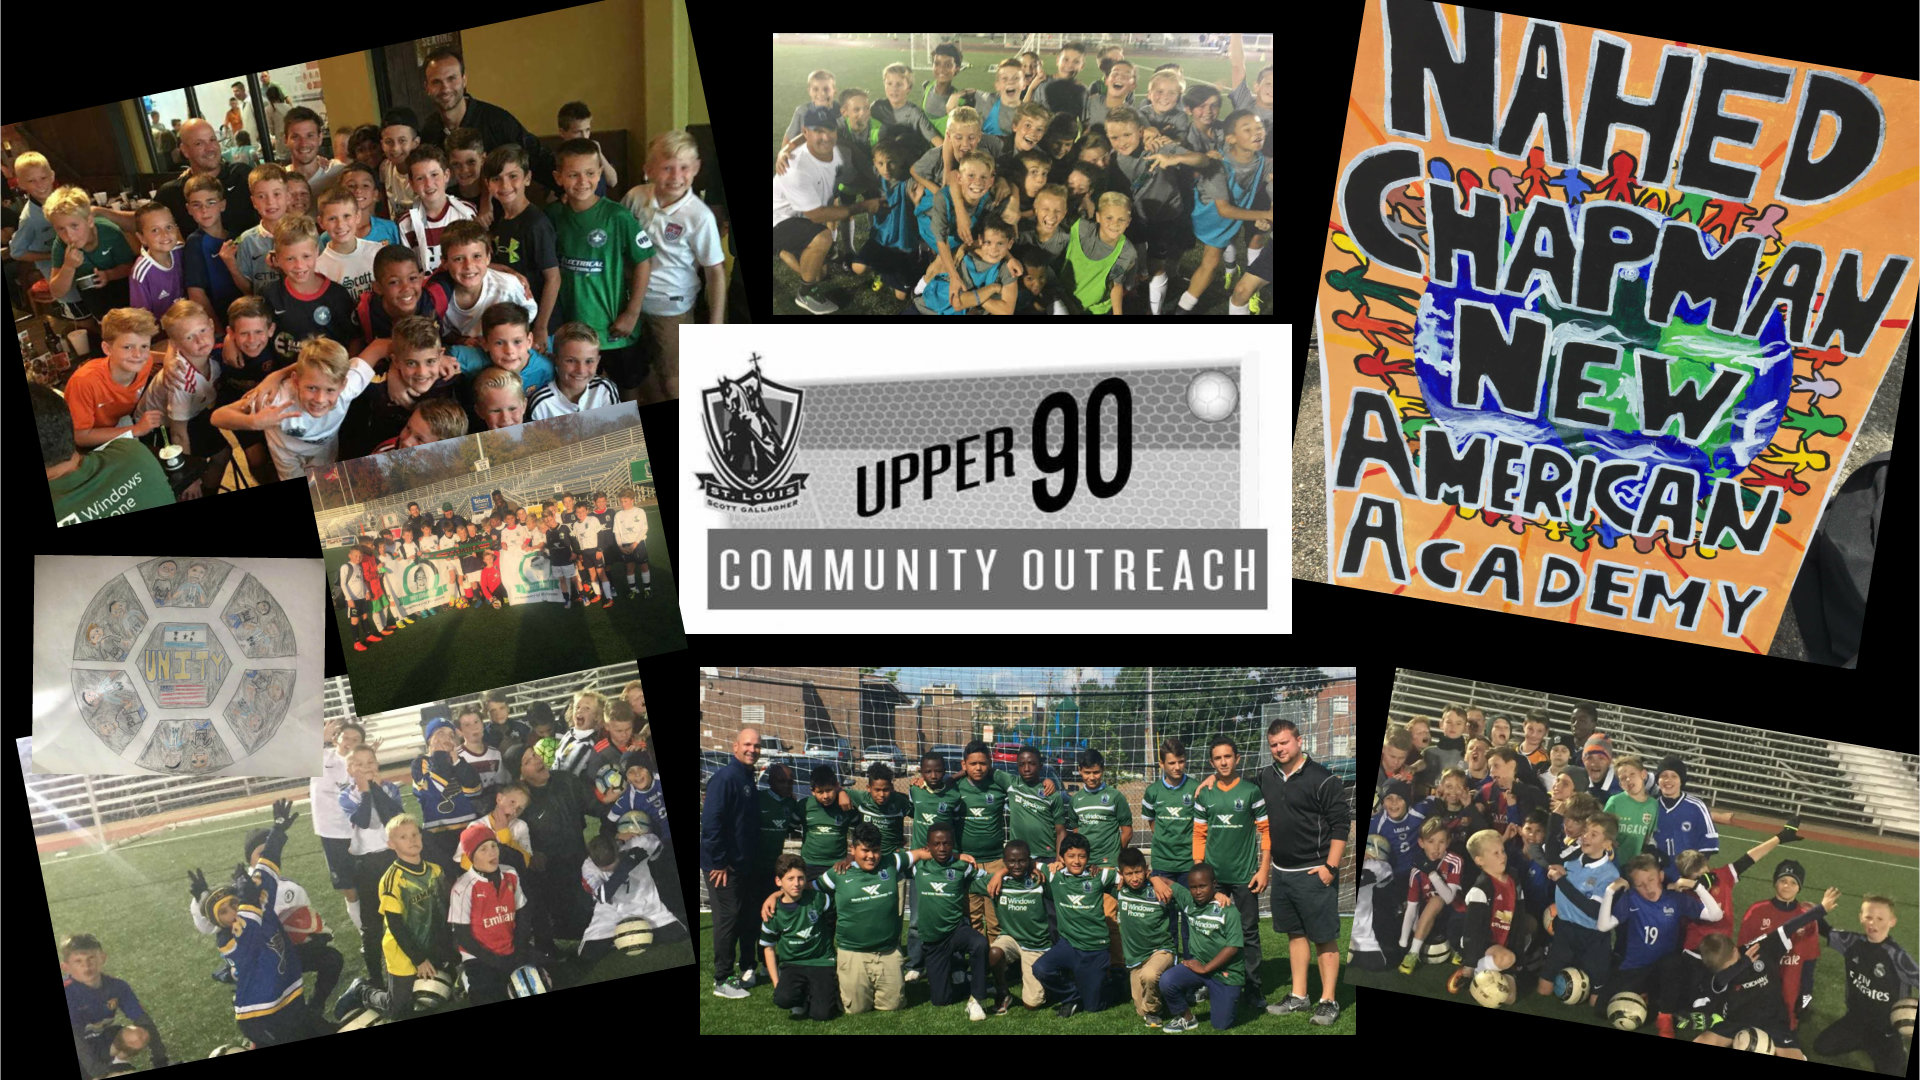 Upper90 Program Gives to Local Immigrant Family